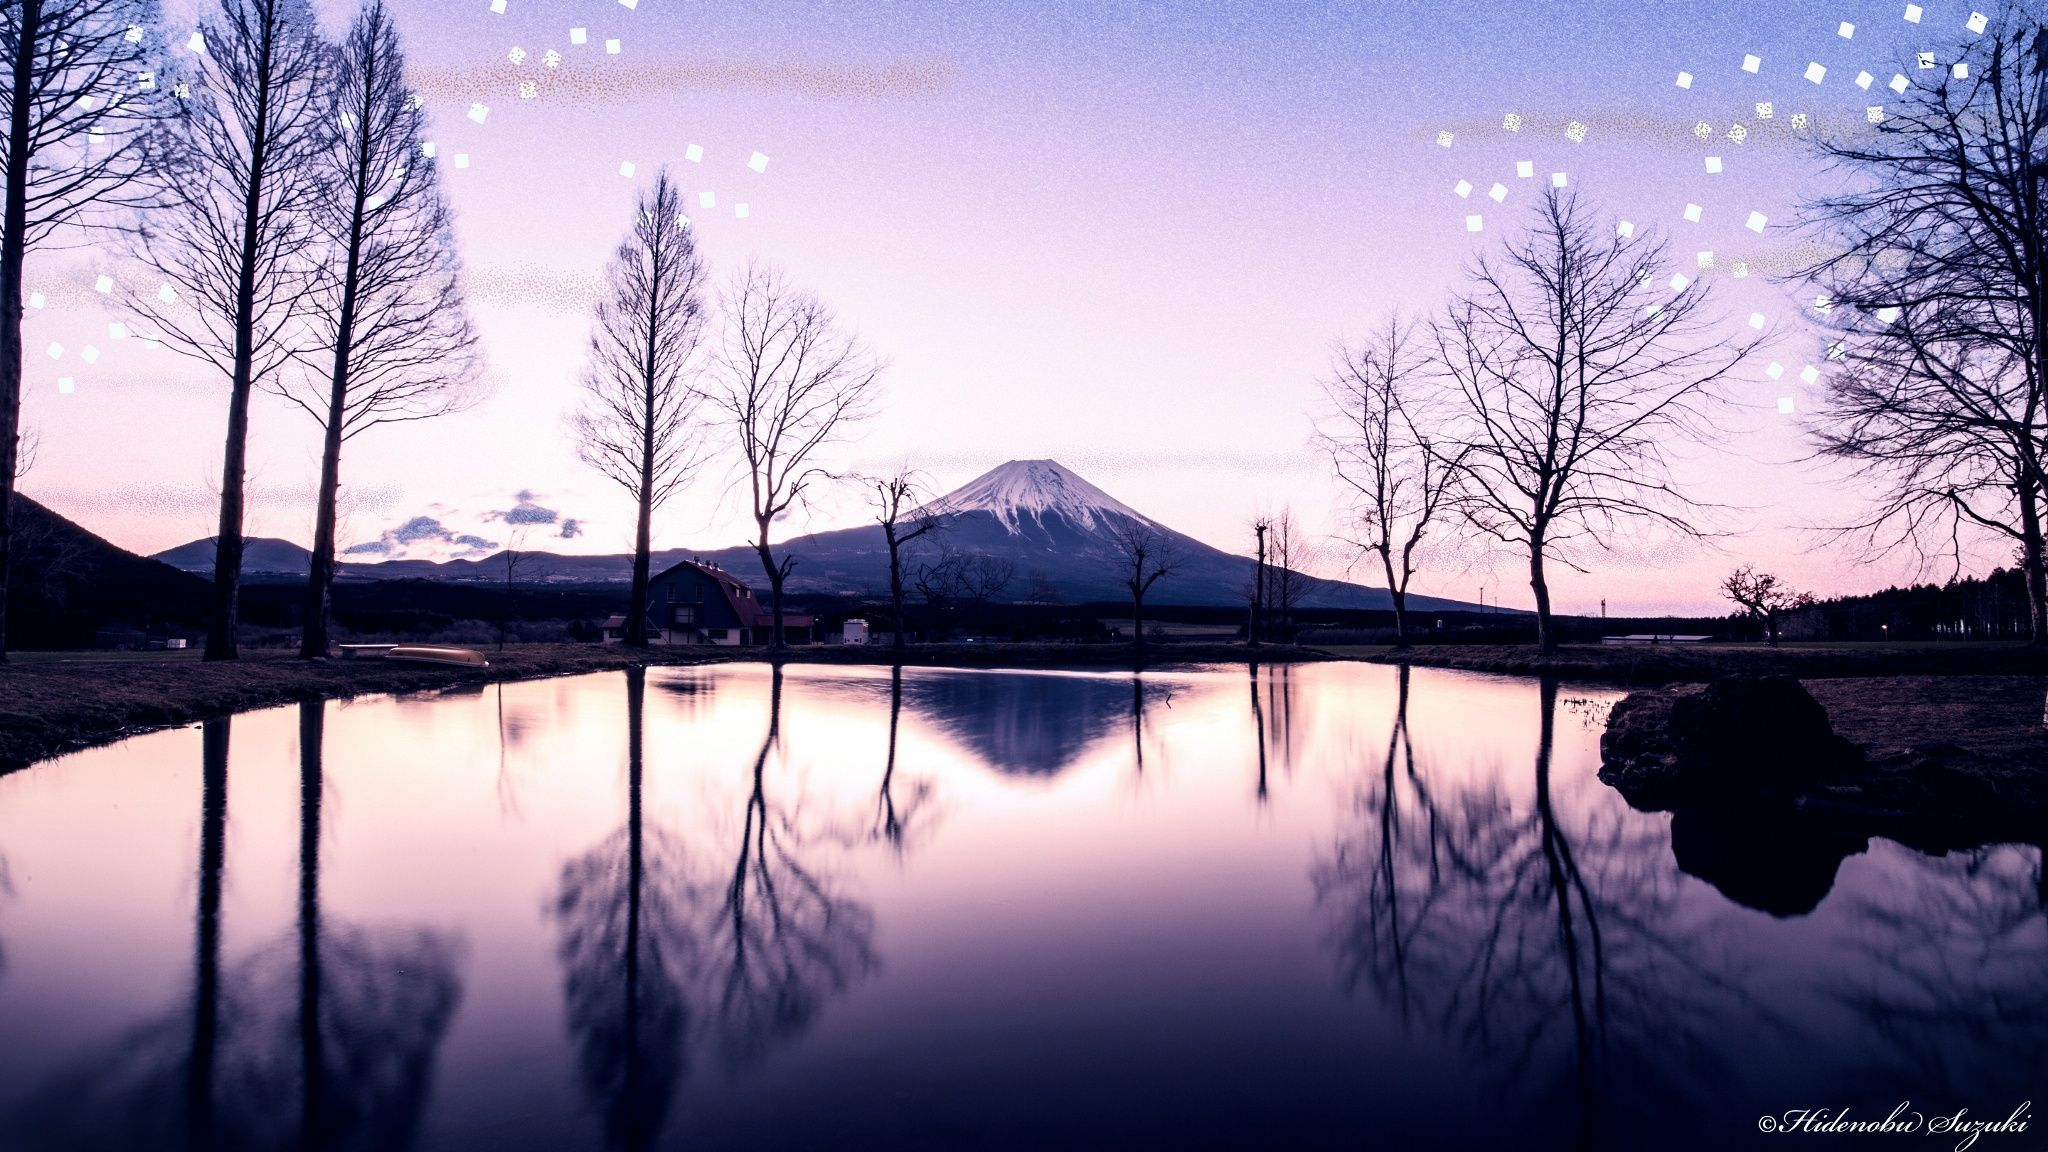 Japanese Traditional StyleMt Fuji By Hidenobu Suzuki On Px - Calming photos of japans landscapes captured by hidenobu suzuki